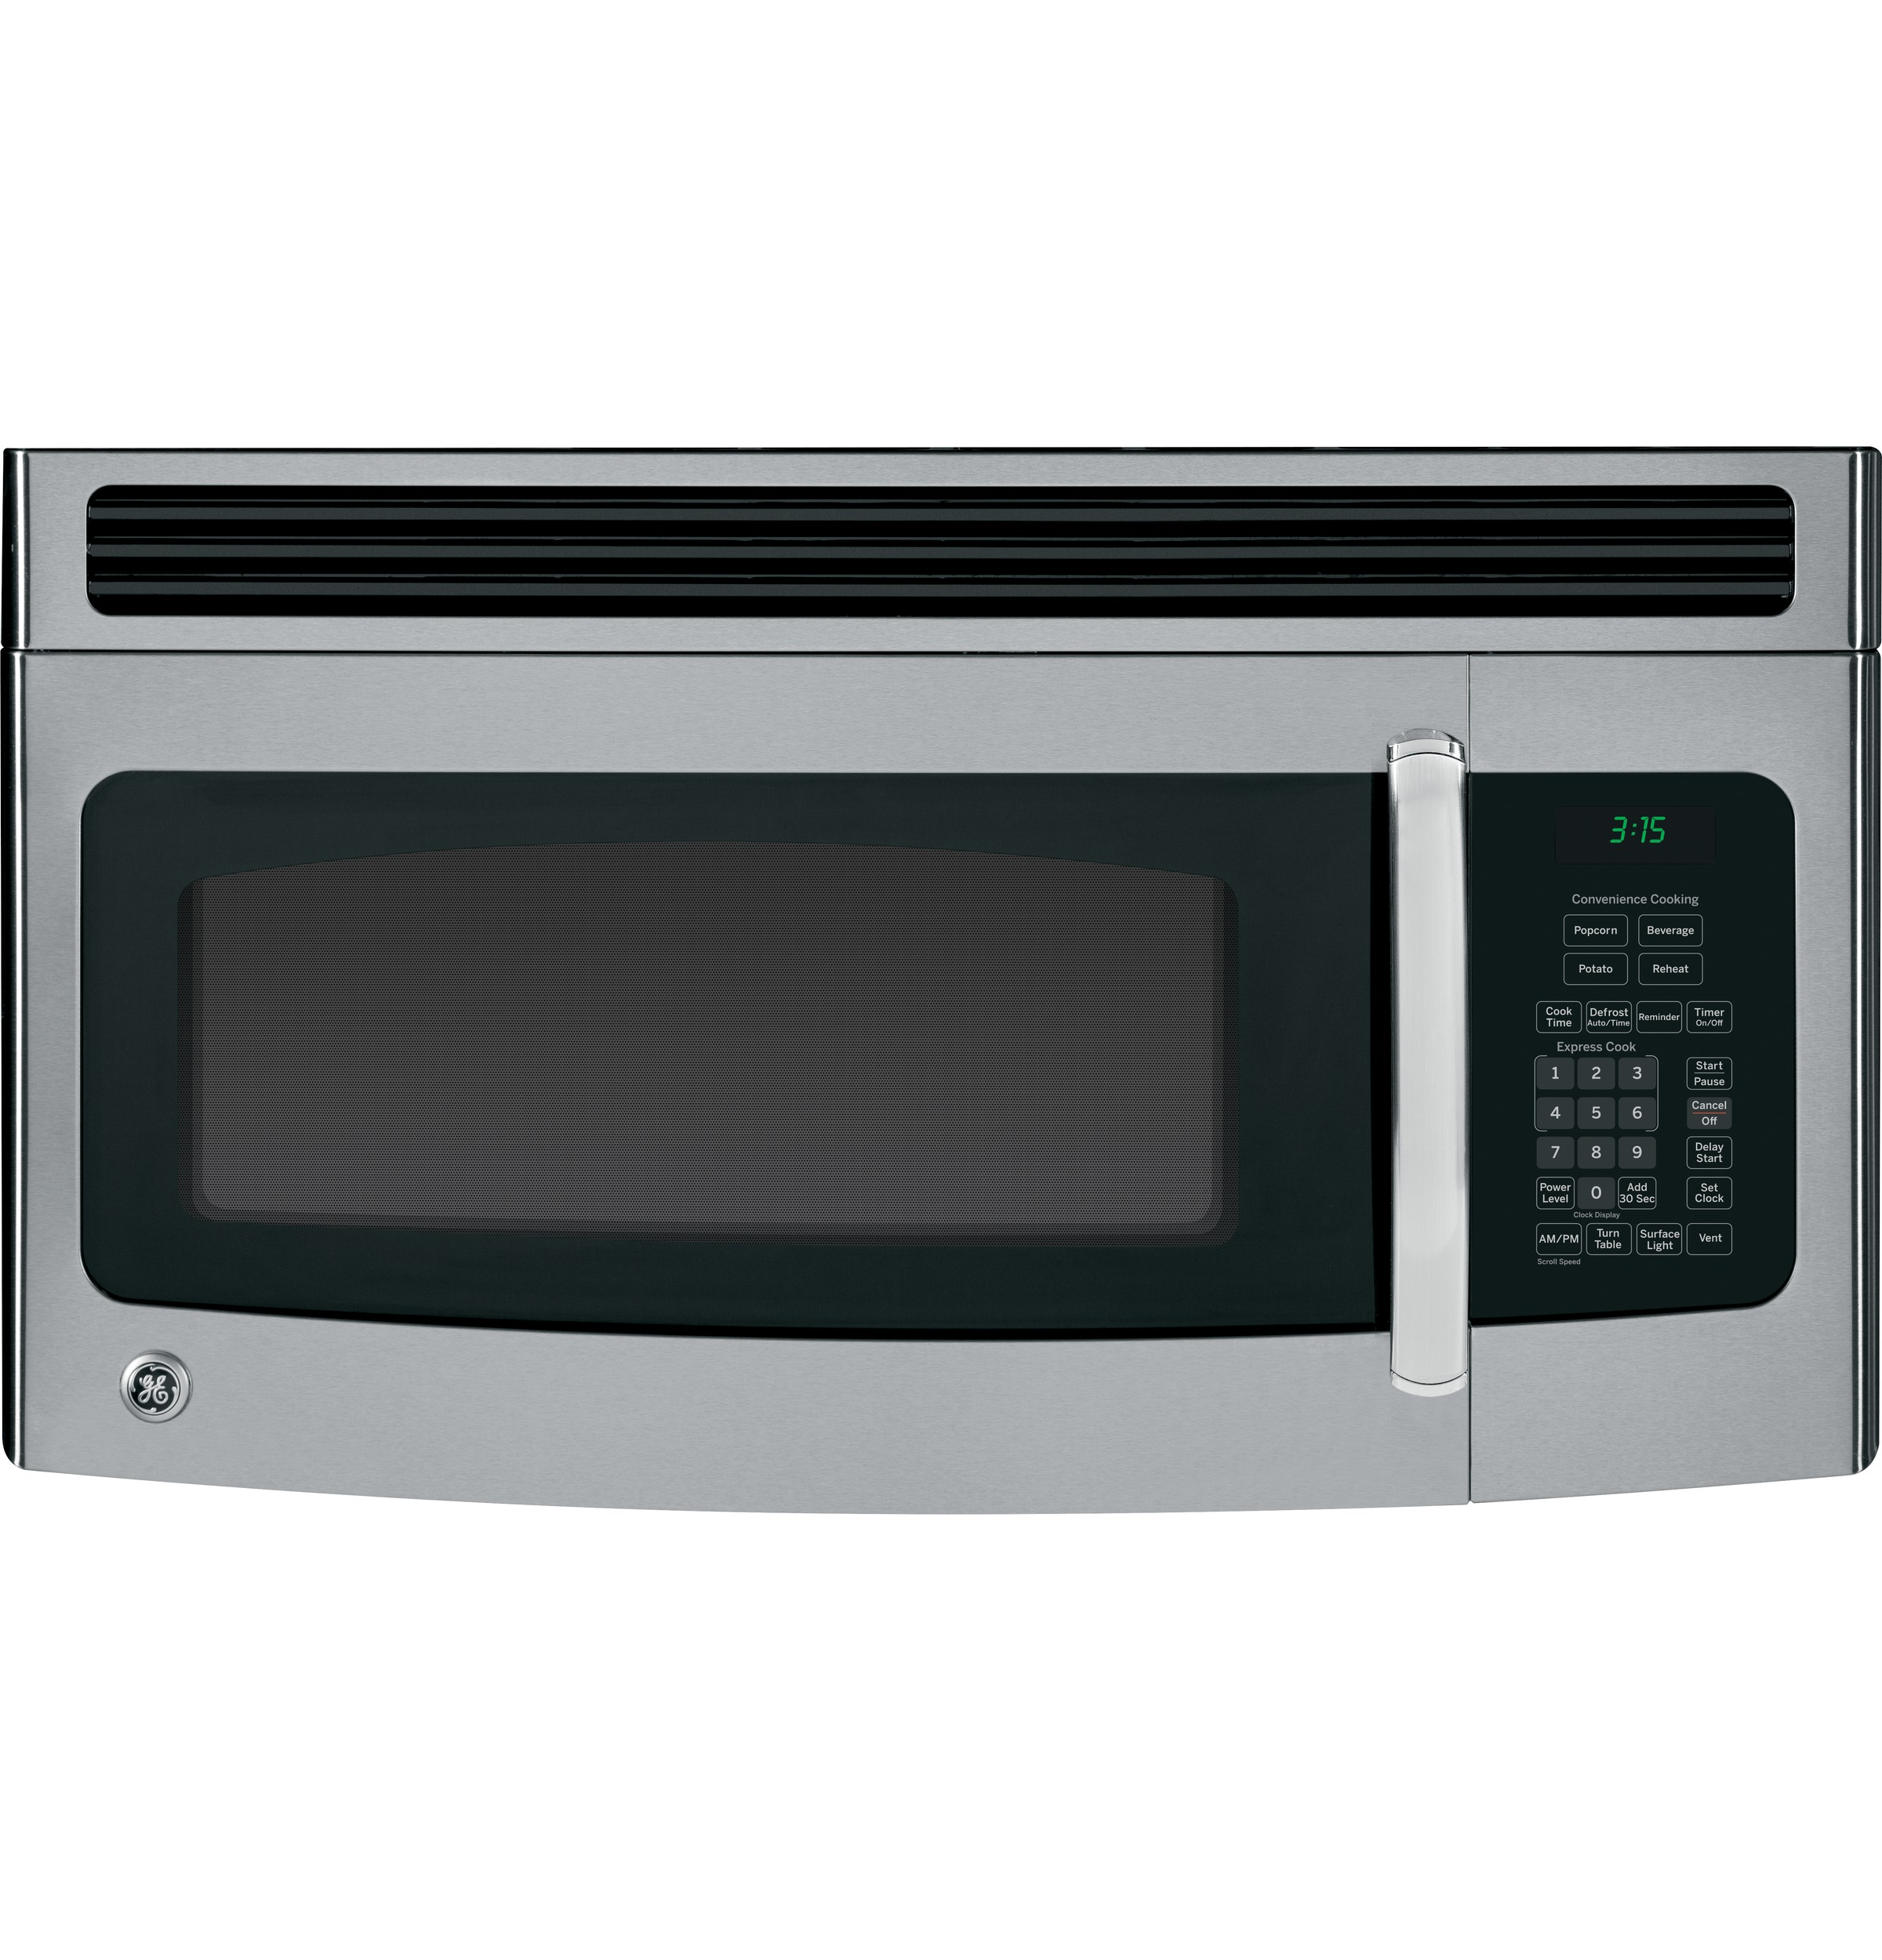 Ge 1 5 Cu Ft Over The Range Microwave Oven With Recirculating